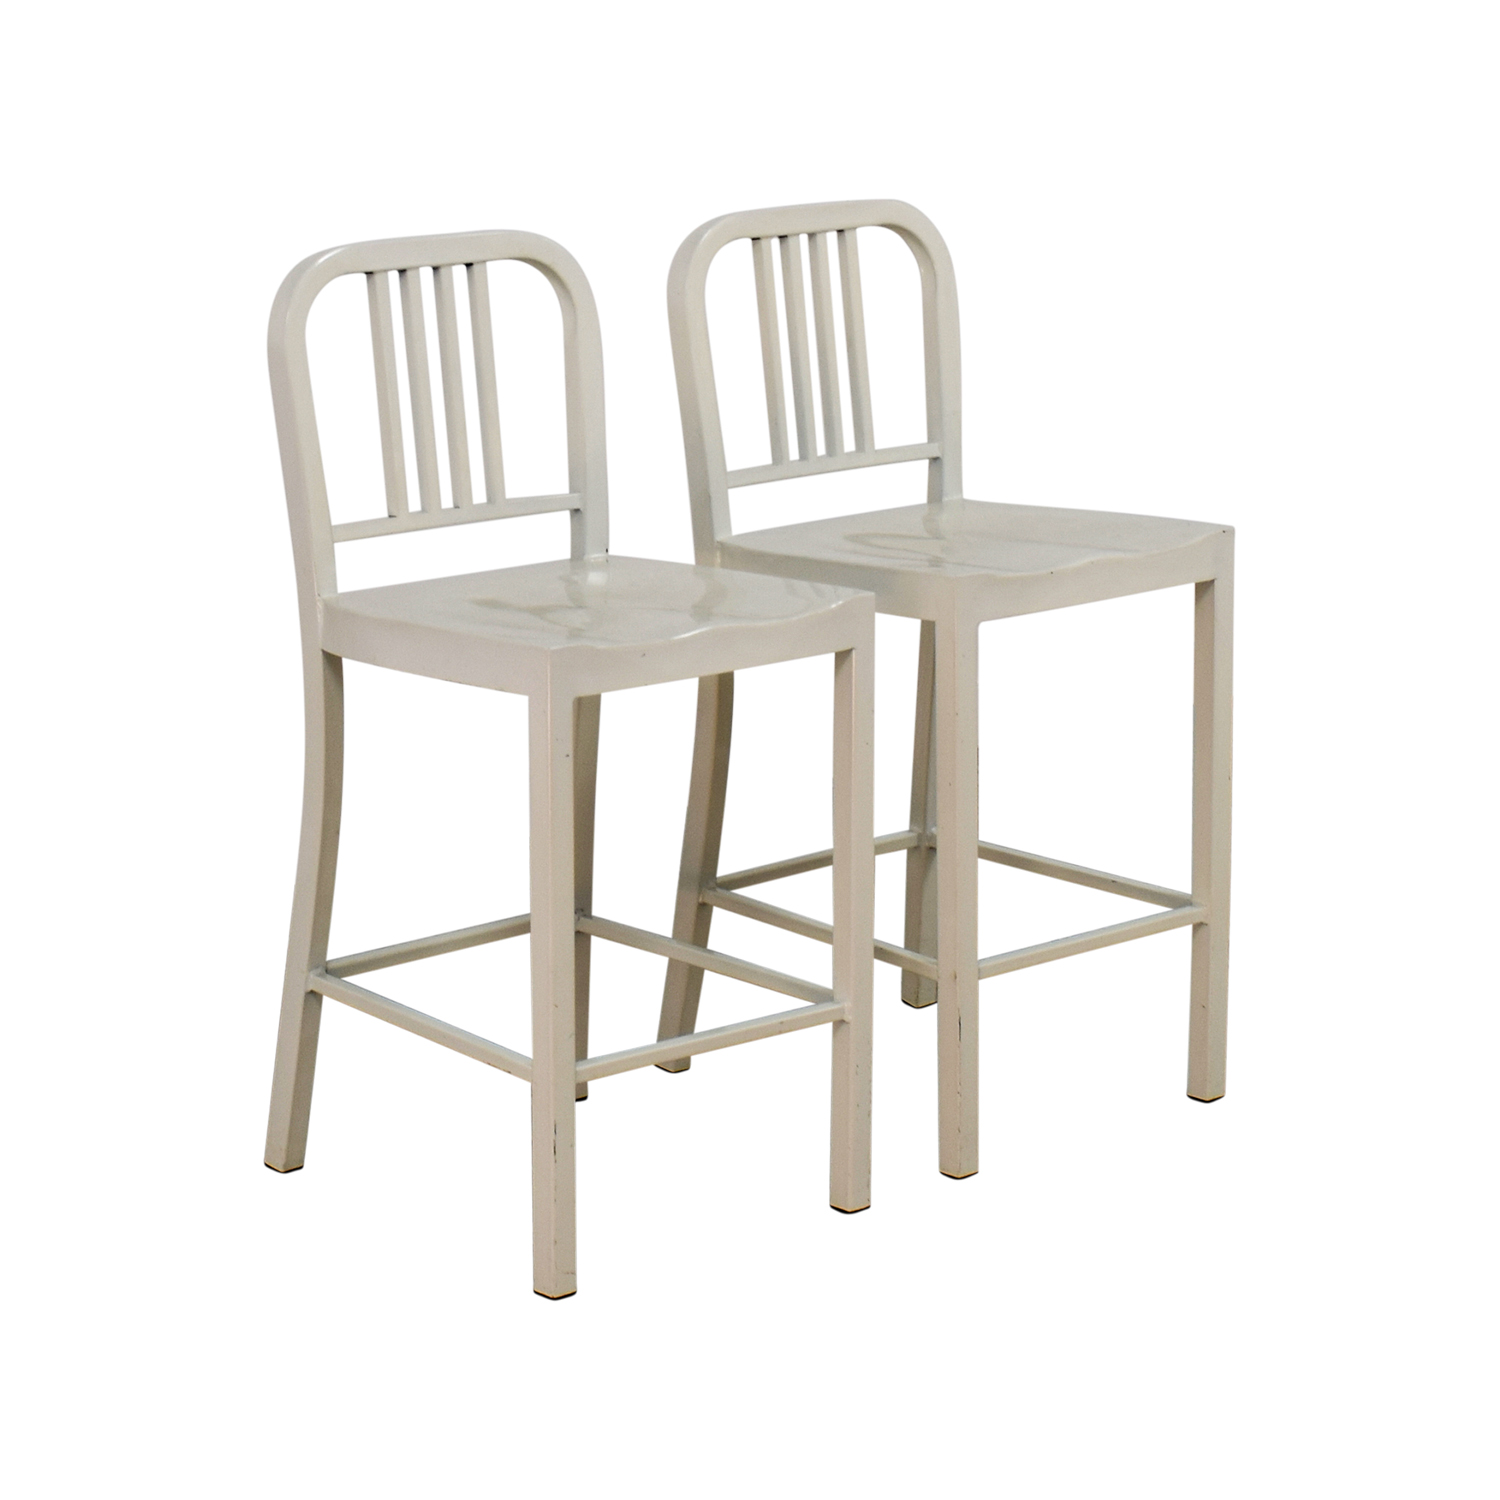 57% OFF White Metal Chairs Chairs